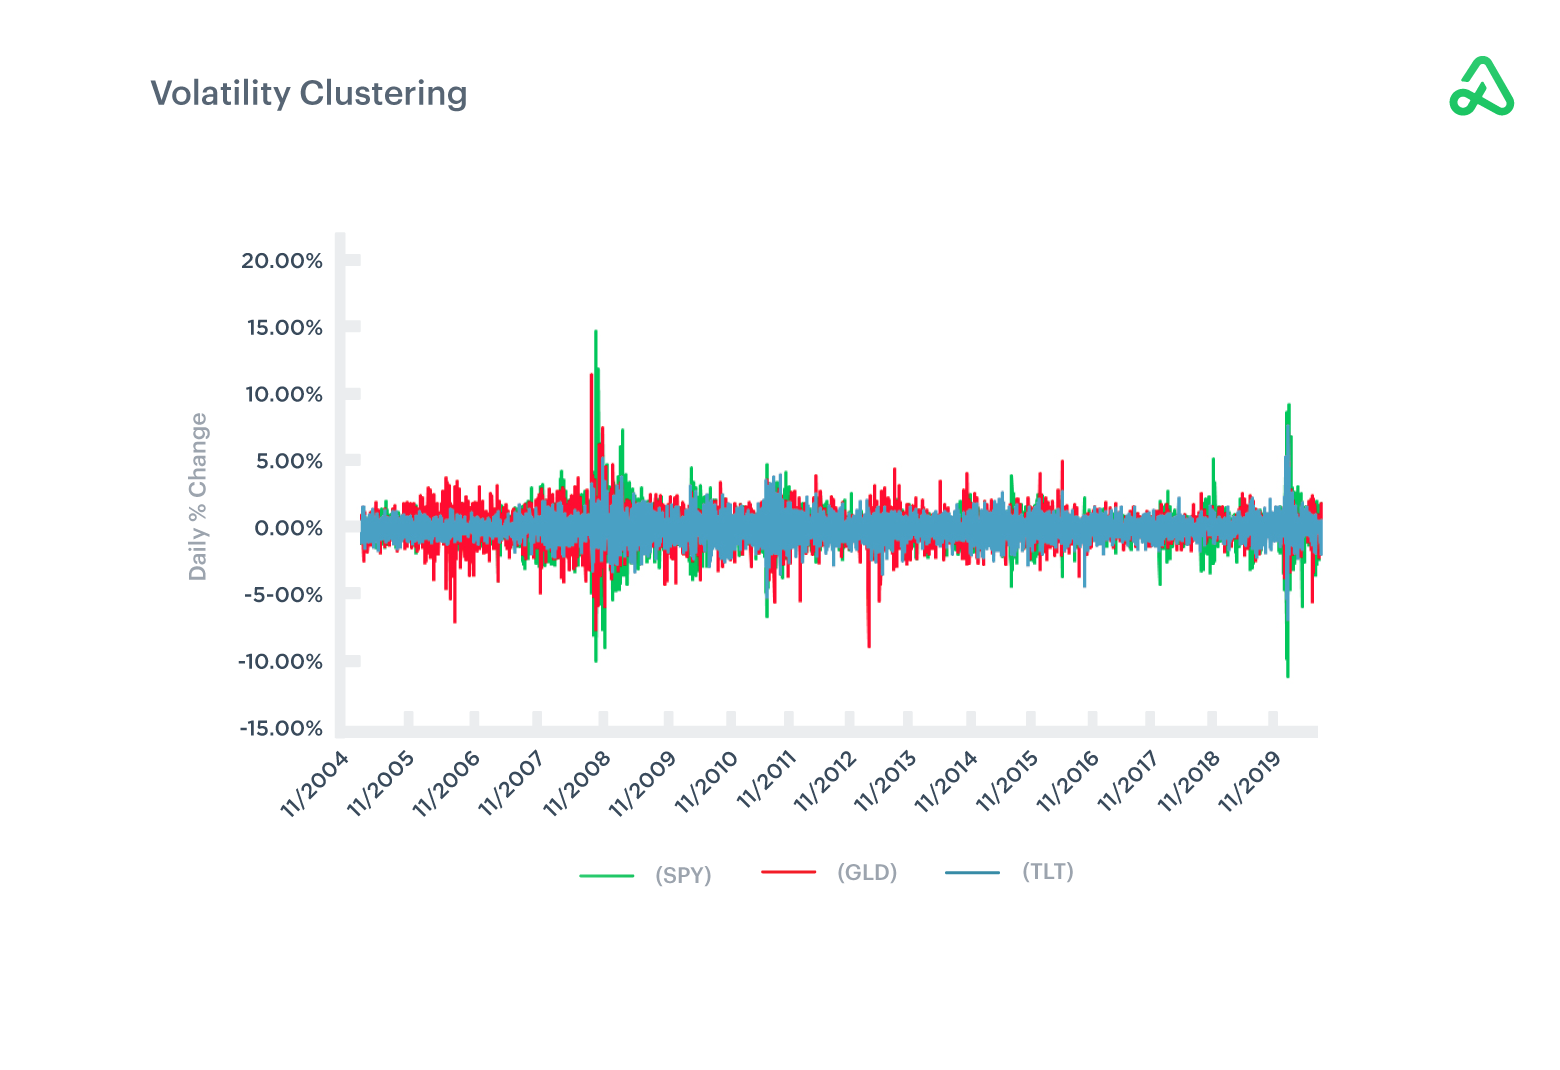 Volatility Clustering image example